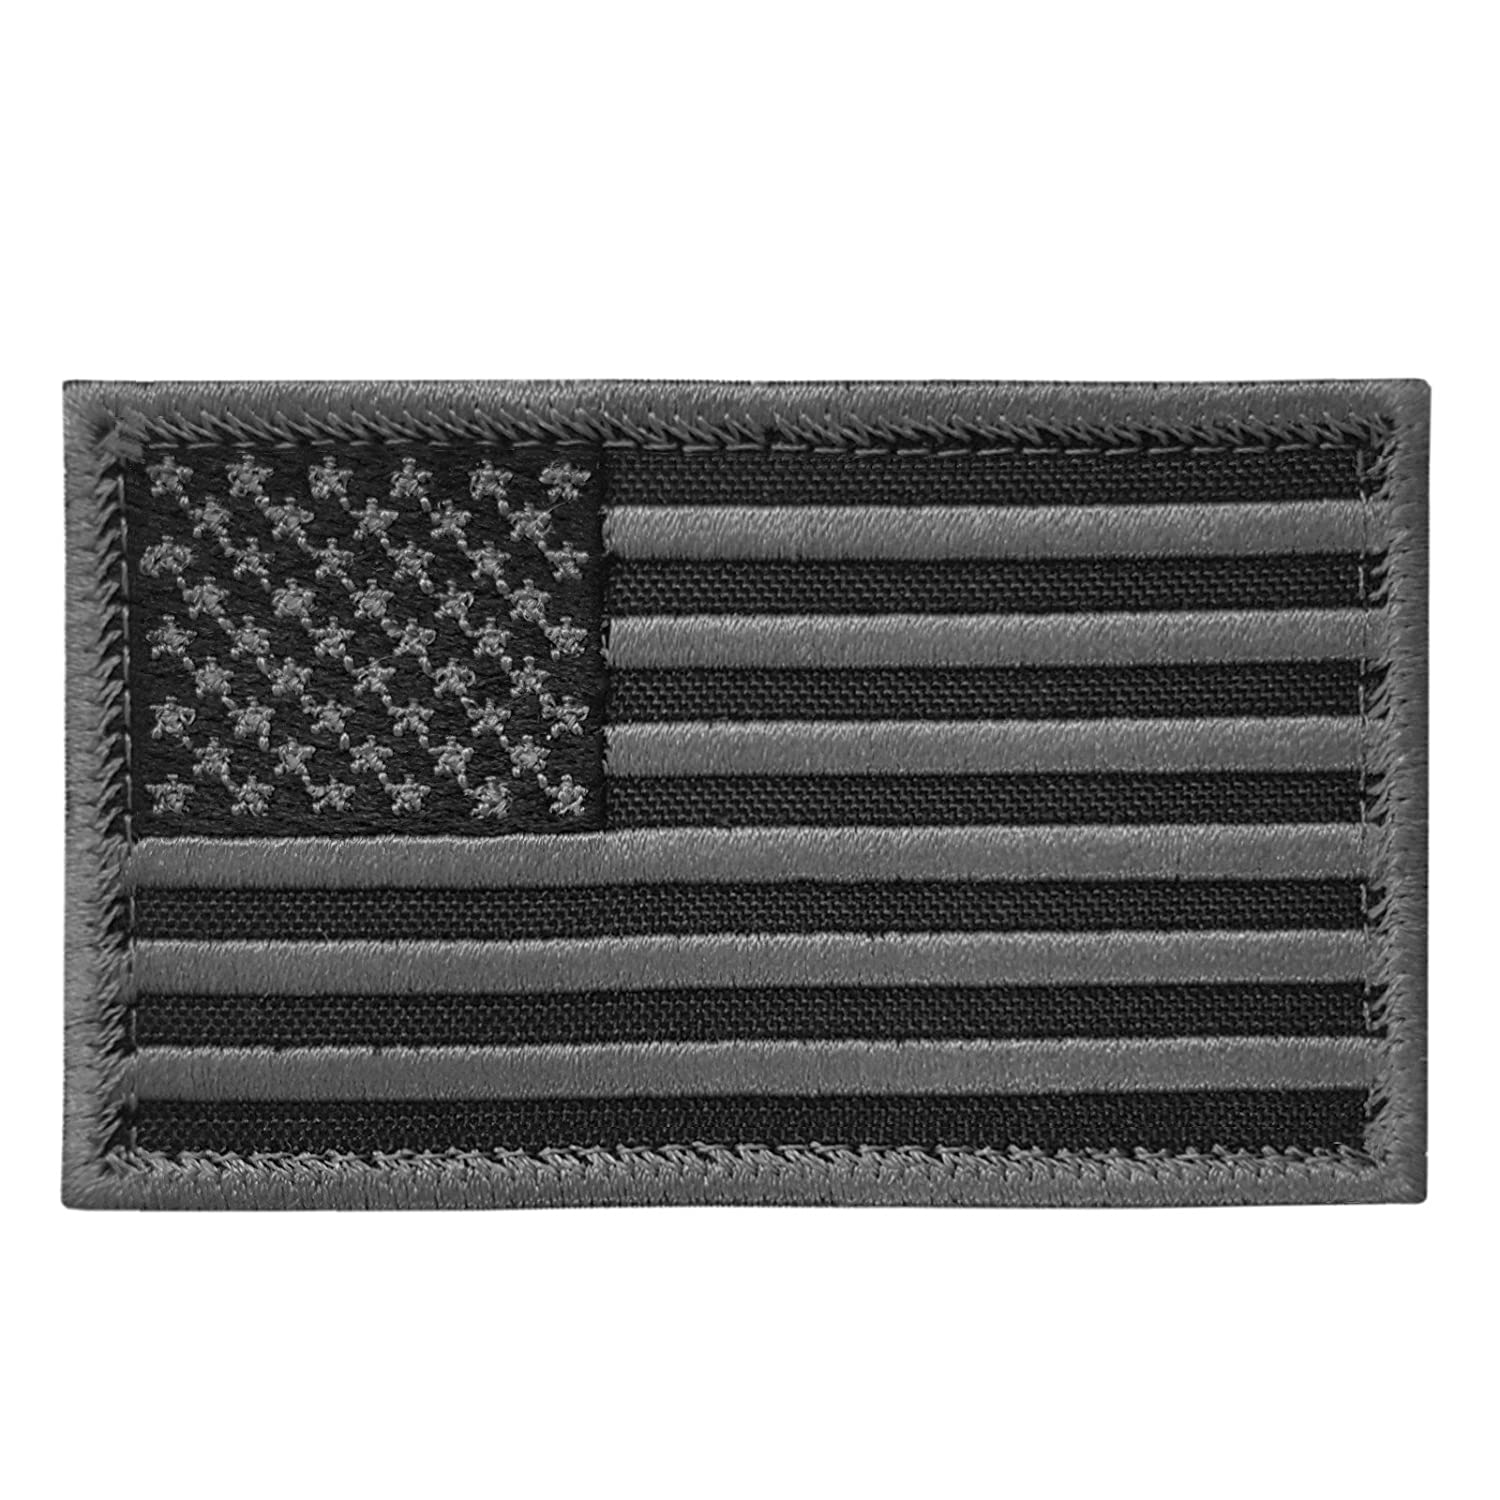 2AFTER1 ACU Black USA American Flag ISAF Morale Tactical Army Touch Fastener Patch P.1415.3.V